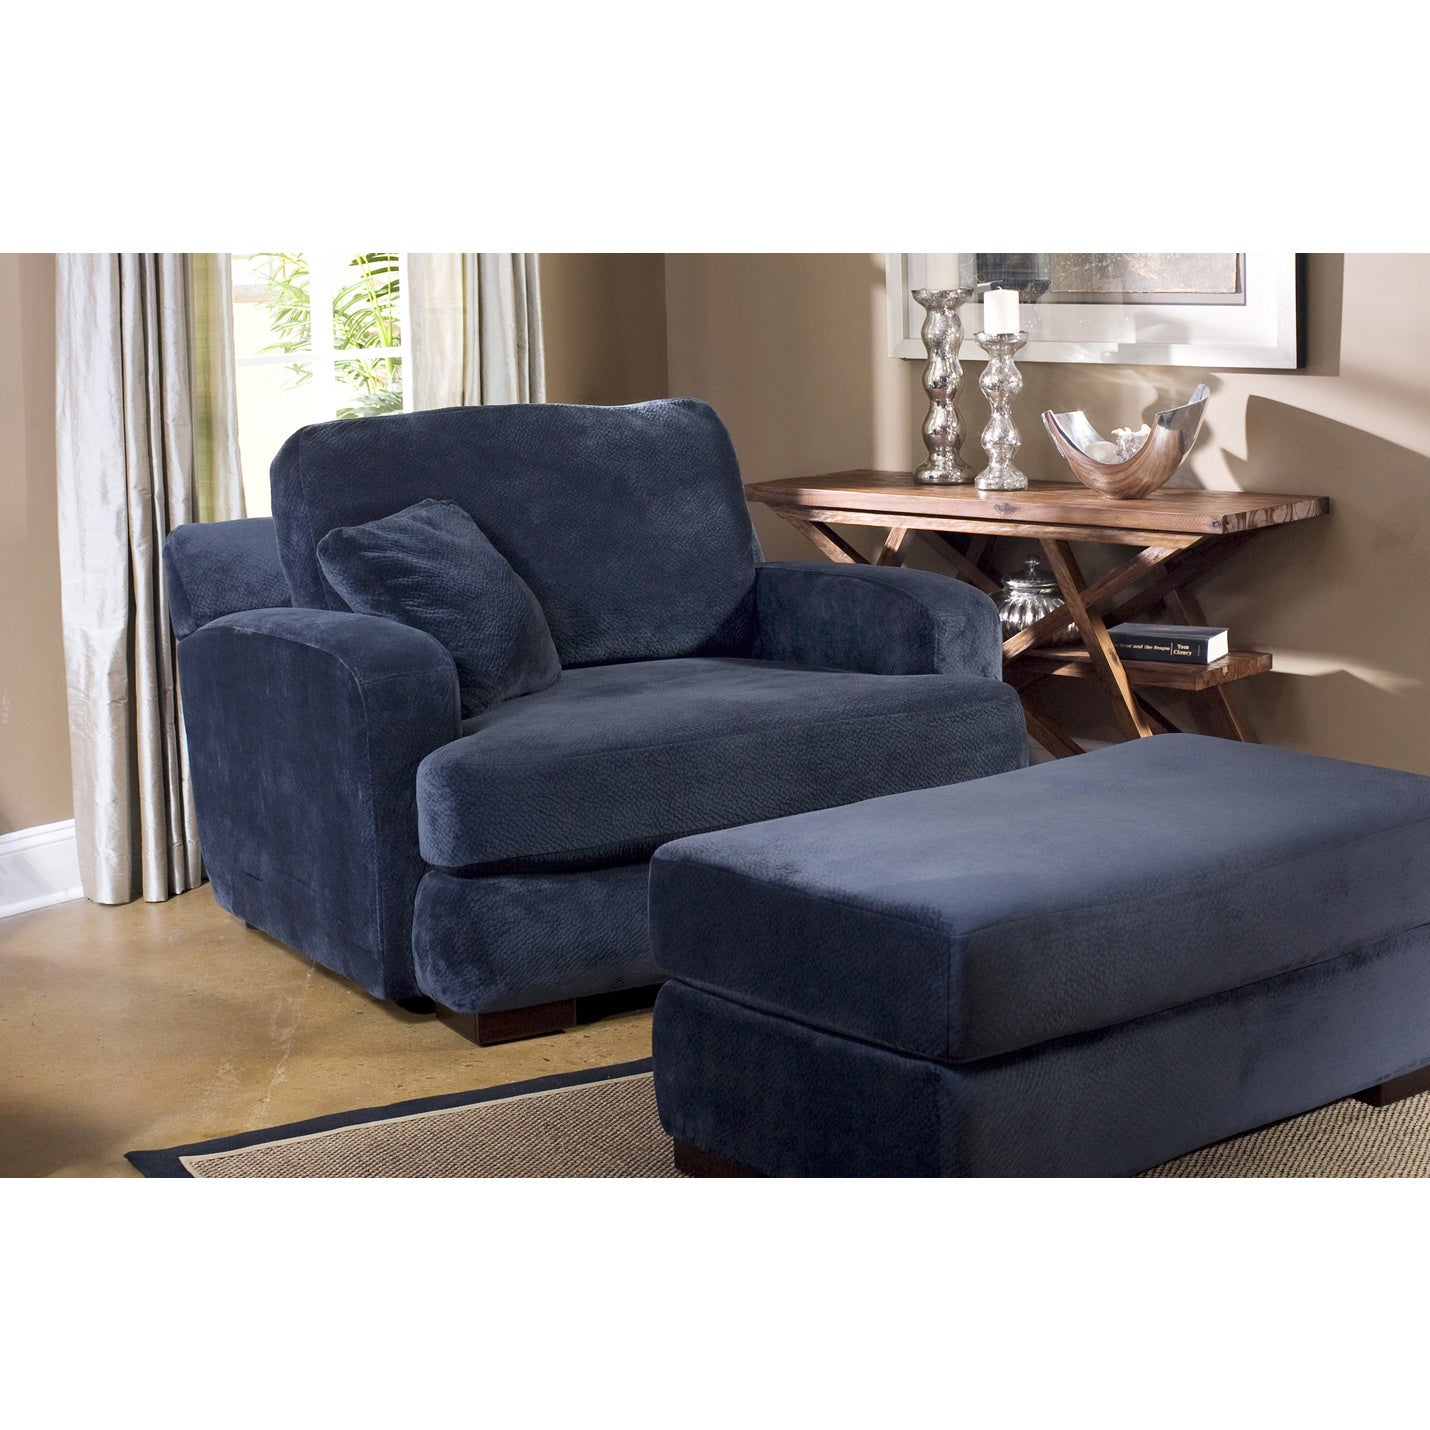 Navy blue chair and ottoman club chair and ottoman navy for Navy blue chair and ottoman